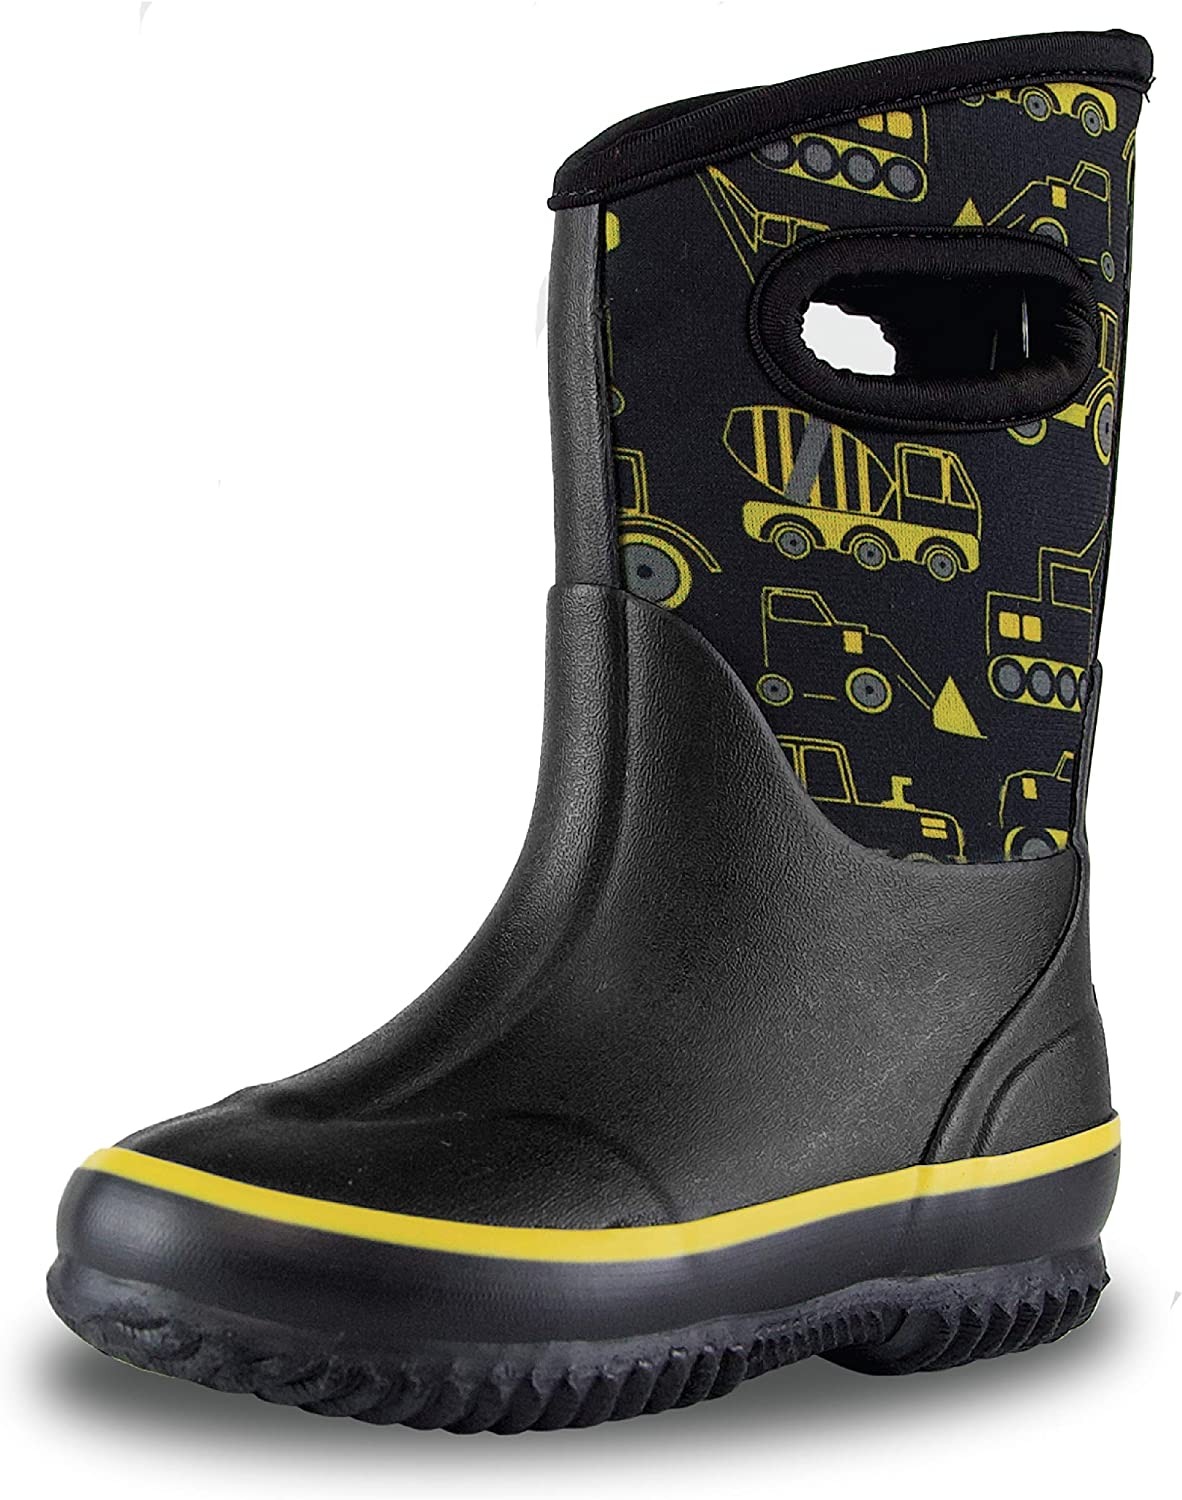 LONECONE Insulating All Weather MudBoots for Toddlers and Kids - Warm Neoprene Boots for Snow, Rain, and Muck